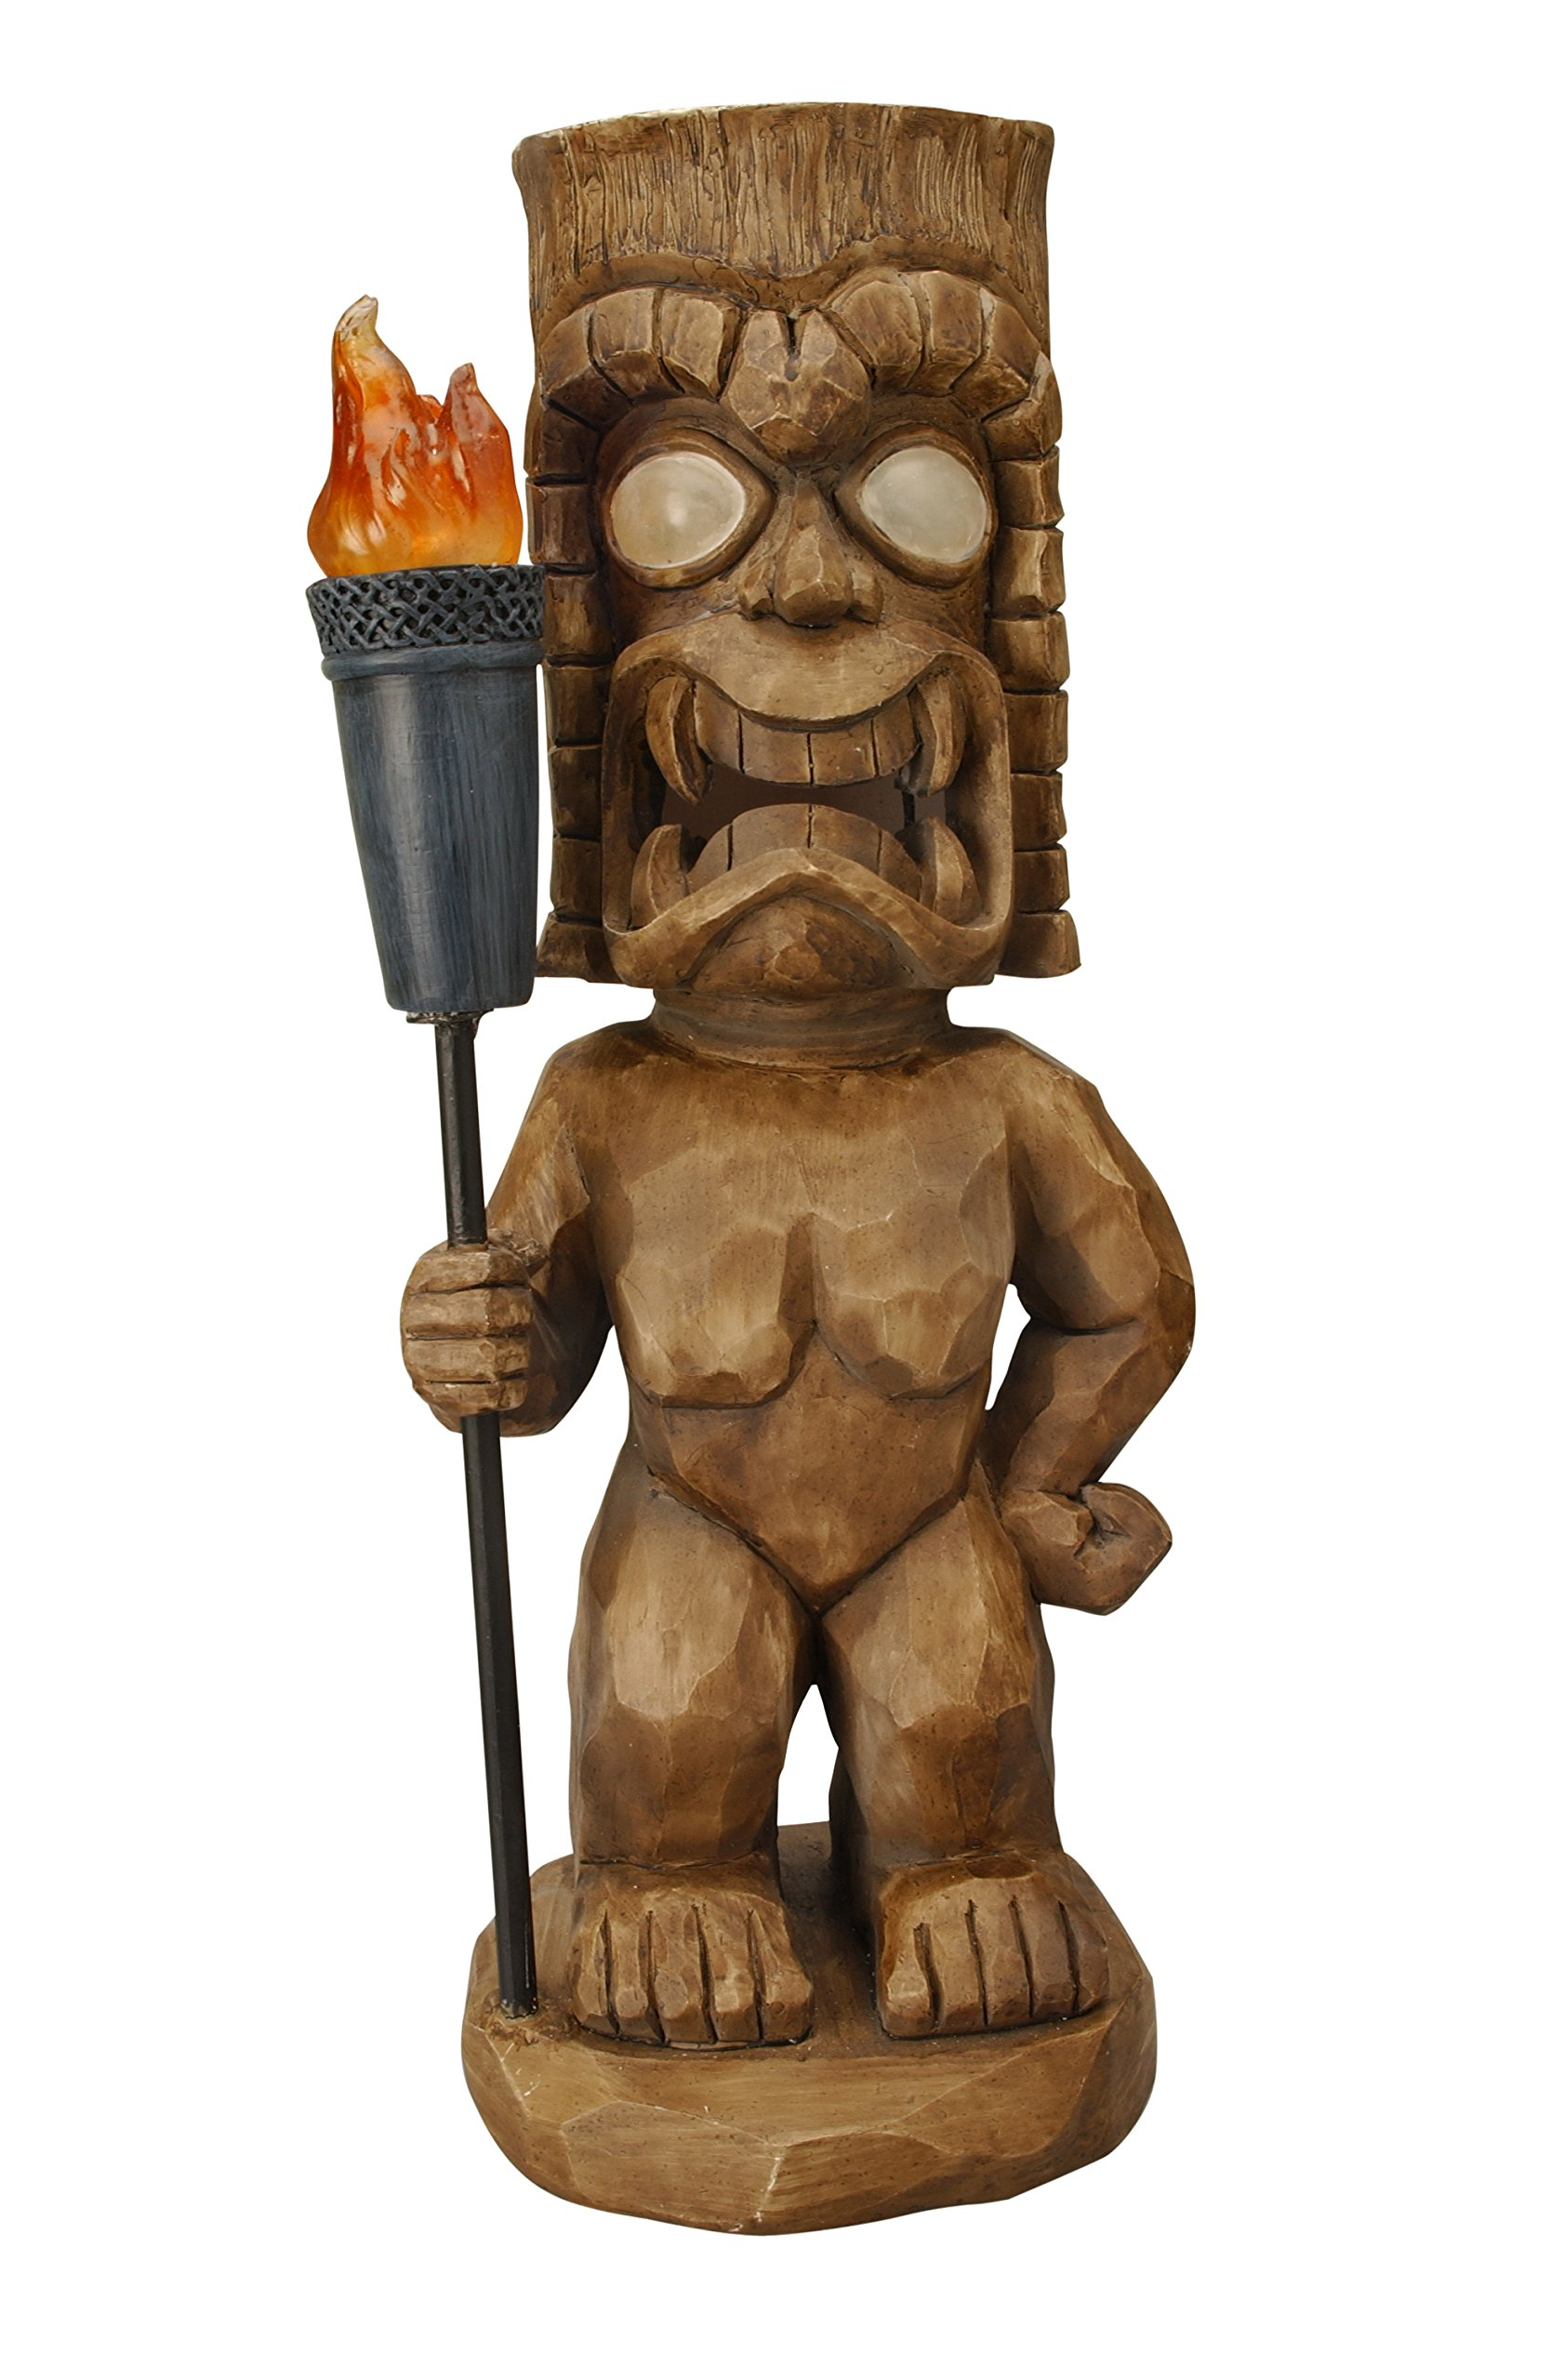 Moonrays 95960 Hand Painted Tiki Themed Outdoor Solar Light Garden Gnome, Tiki Warrior, Wood Carved with LED Illuminated Eyes and Torch, Pre Charged Battery Included, Measures 18.5 Inches by Moonrays